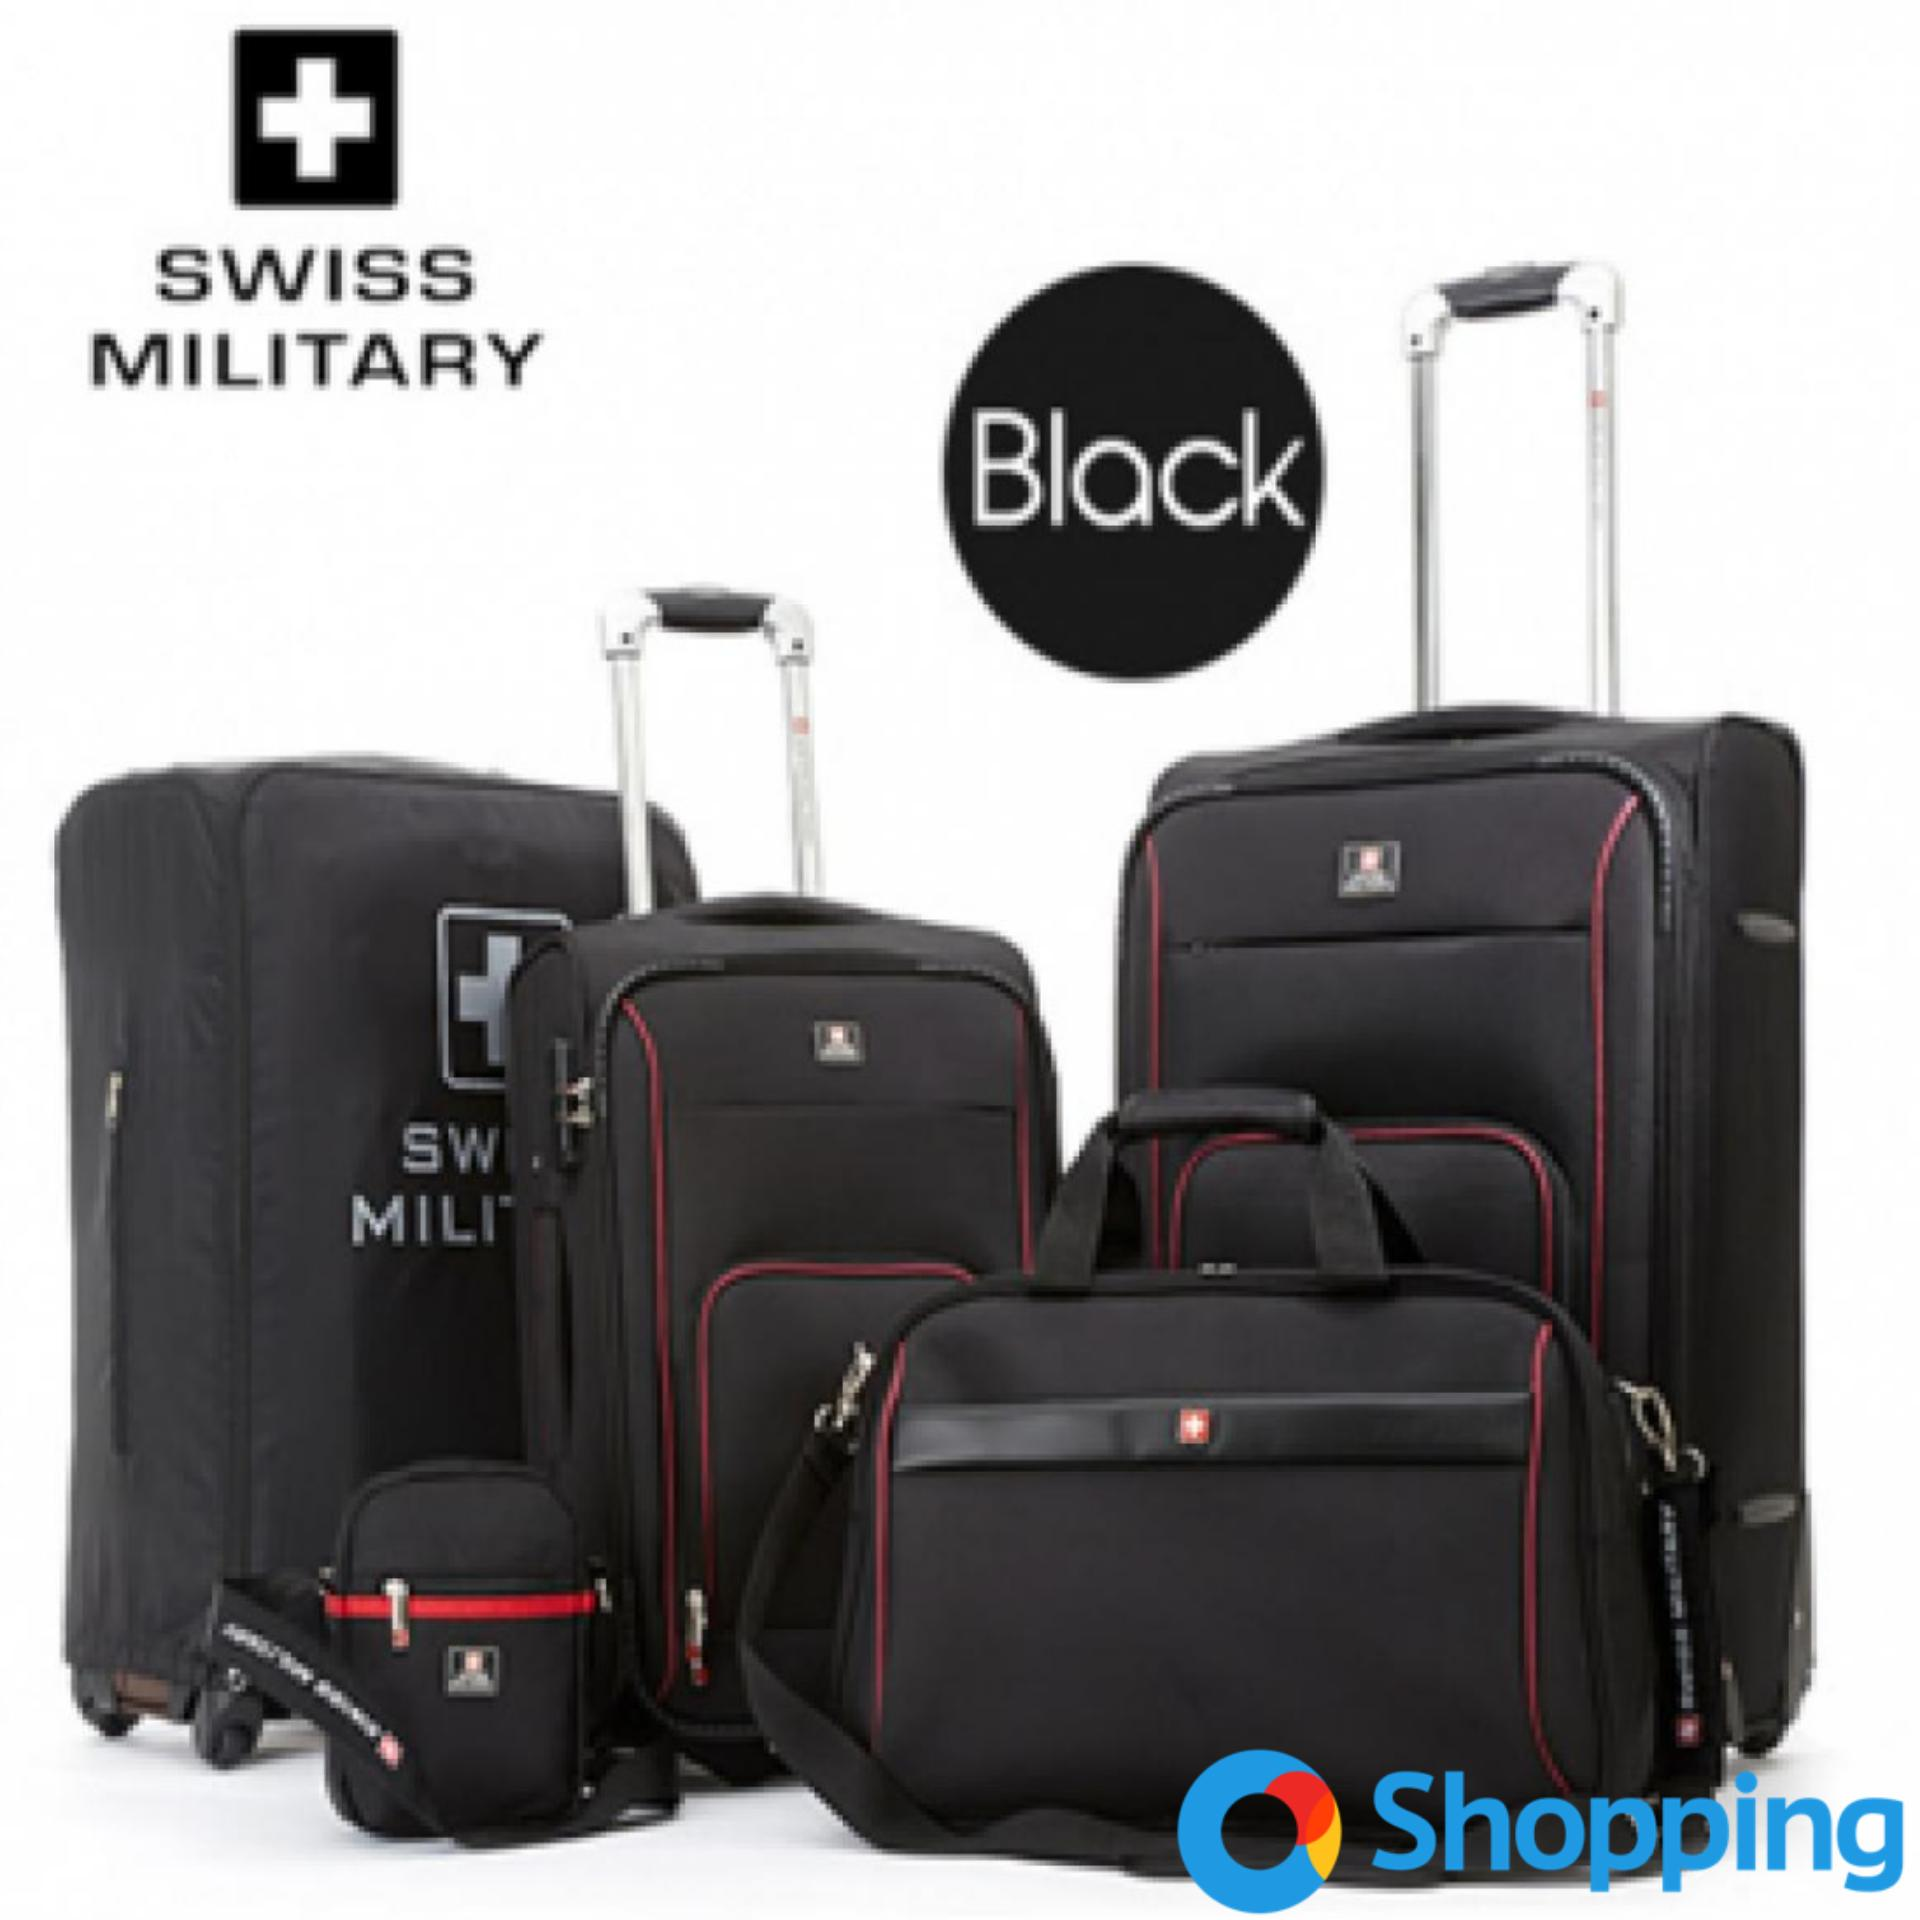 b842dfb95 Luggage for sale - Luggage Bag online brands, prices & reviews in ...